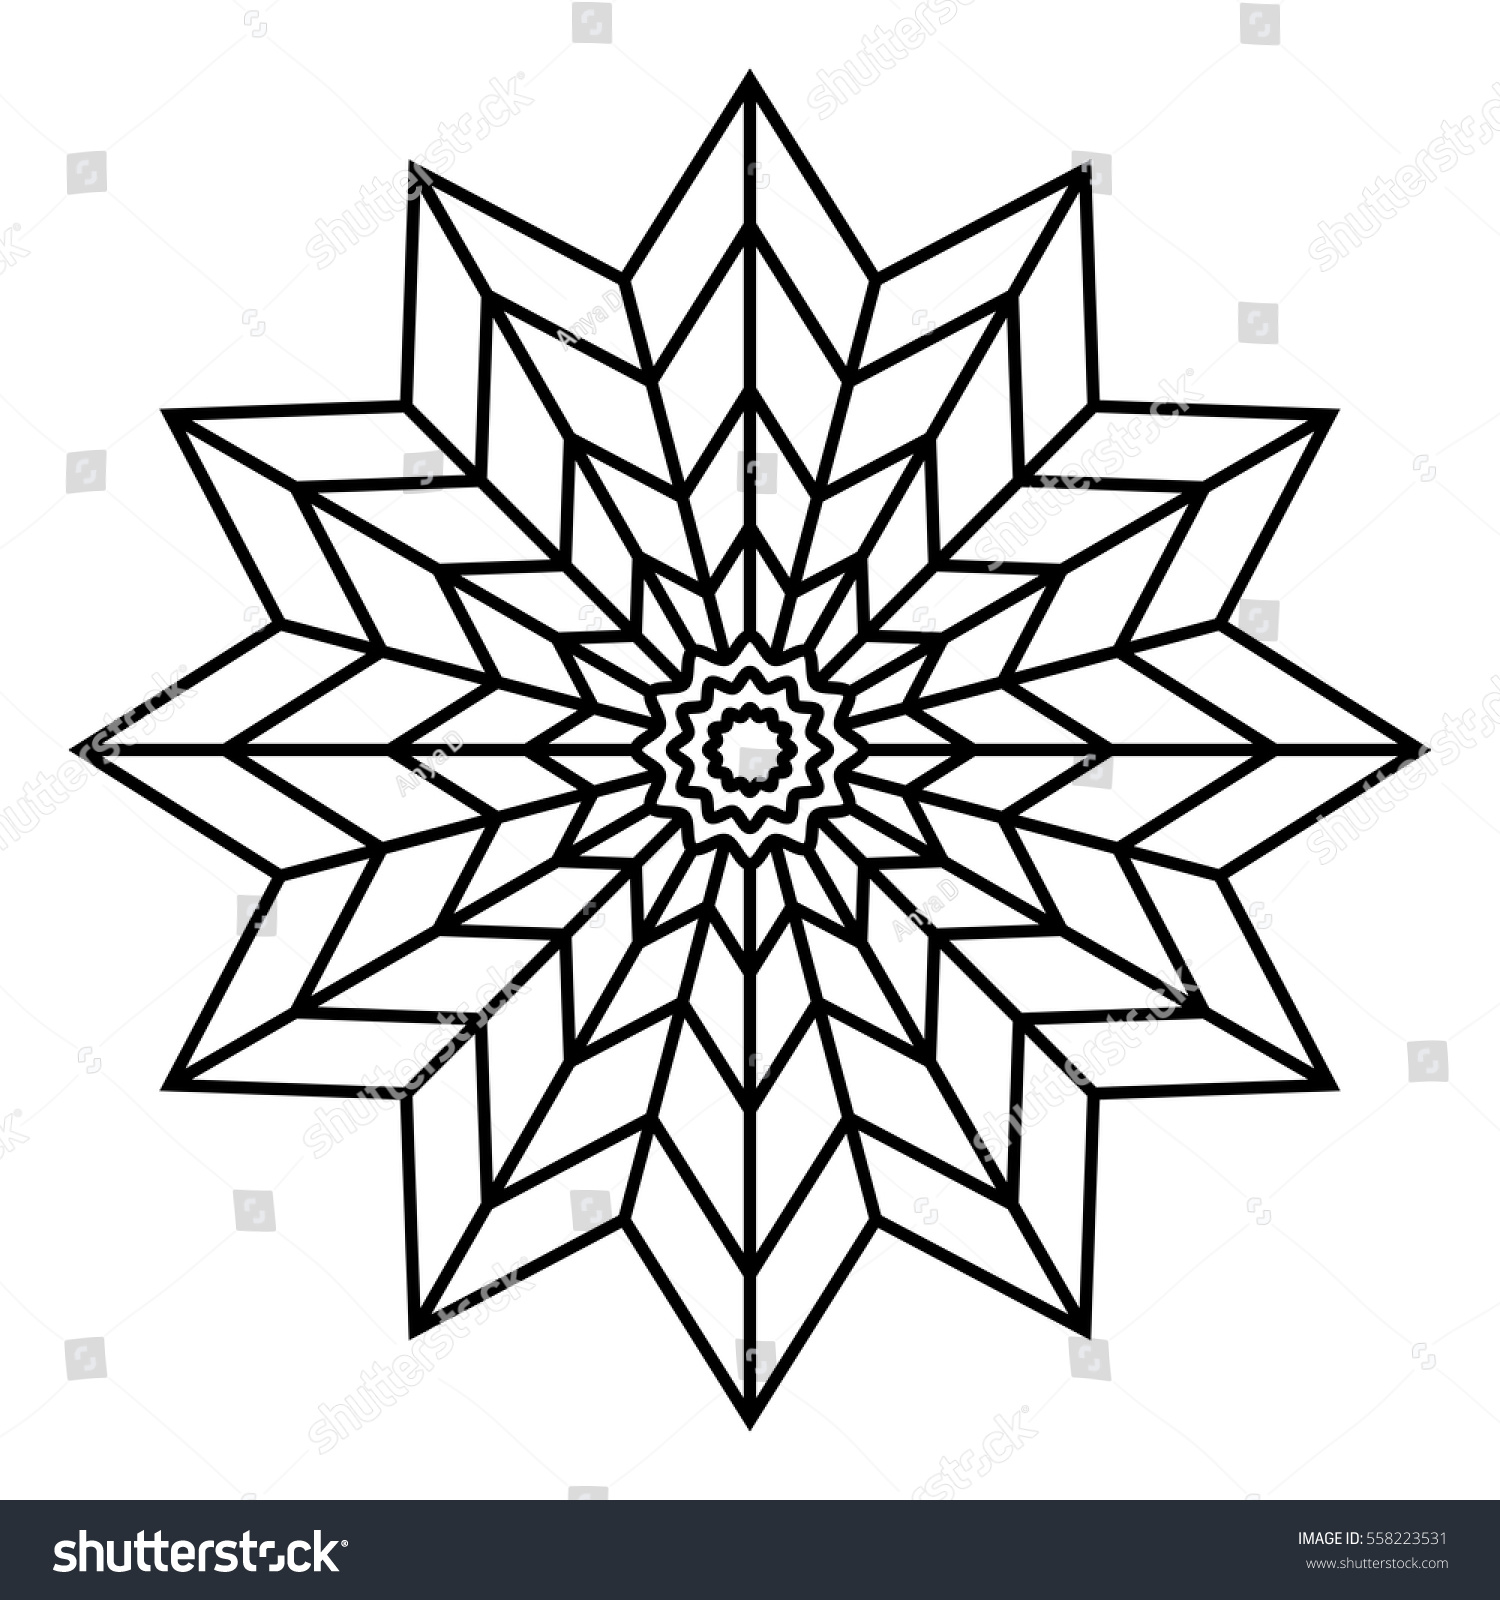 easy floral black white mandala coloring stock vector 558223531